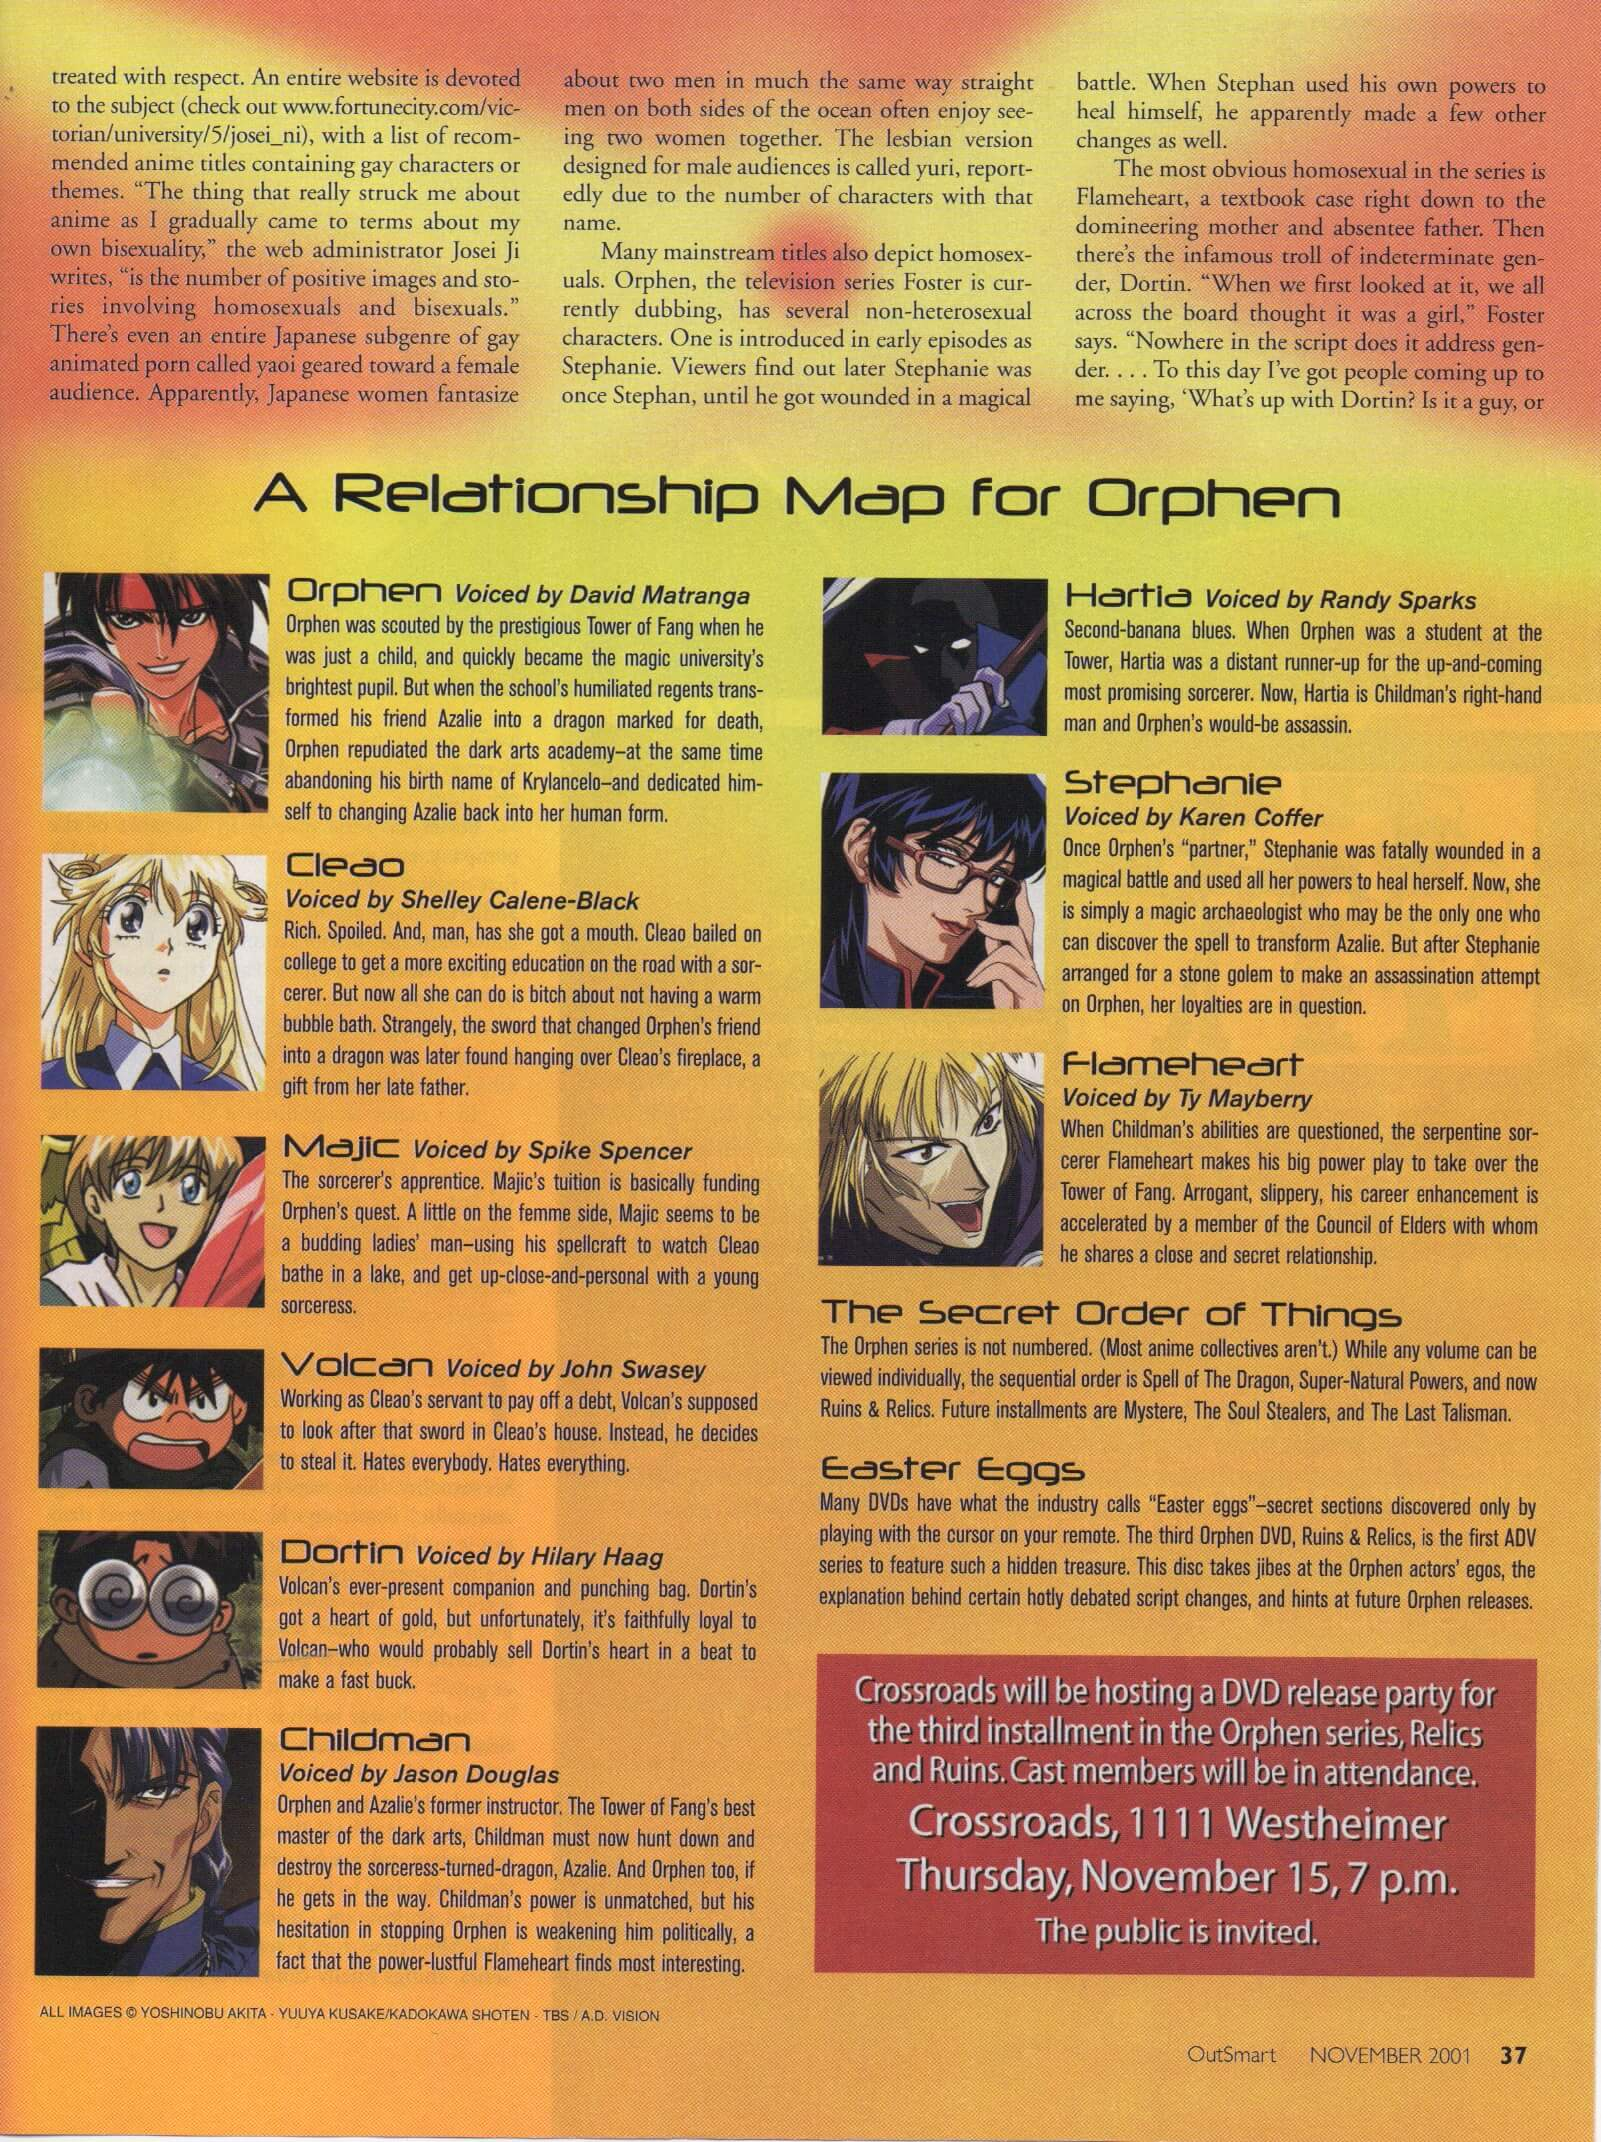 """Page 4 of the OutSmart article """"Sleeping With The Anime"""" with images of the anime characters with the voice actors portraying them"""